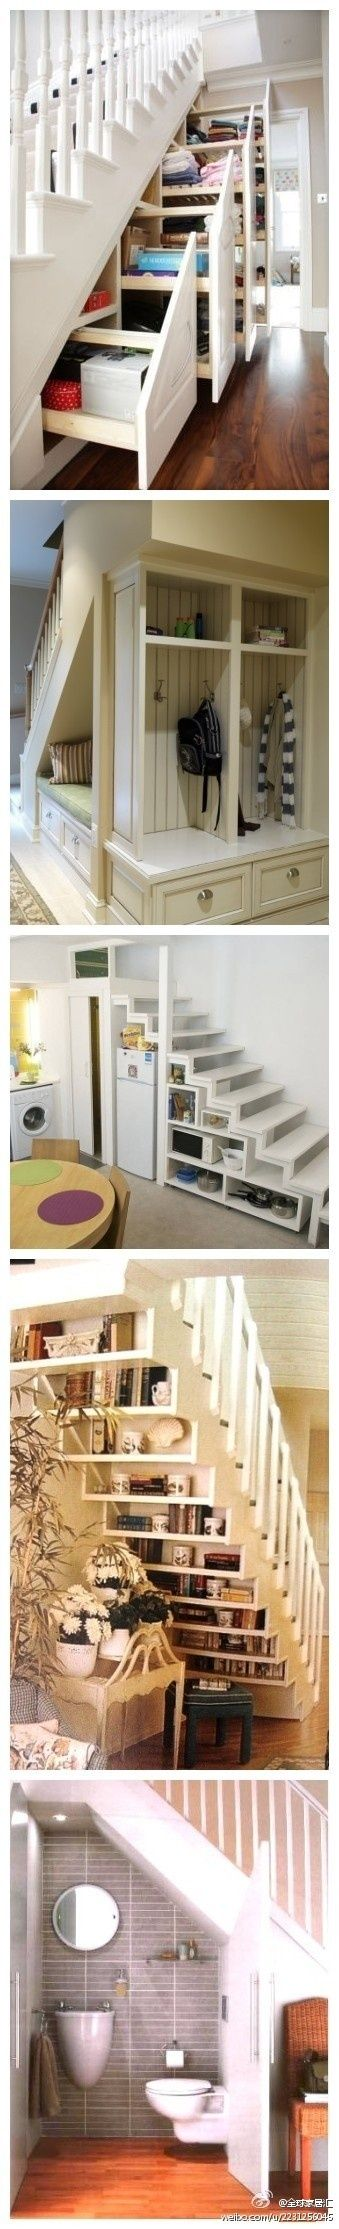 """Love the idea of the built in bed area and """"closet""""...would add a great deal of seating space to front part of basement!"""